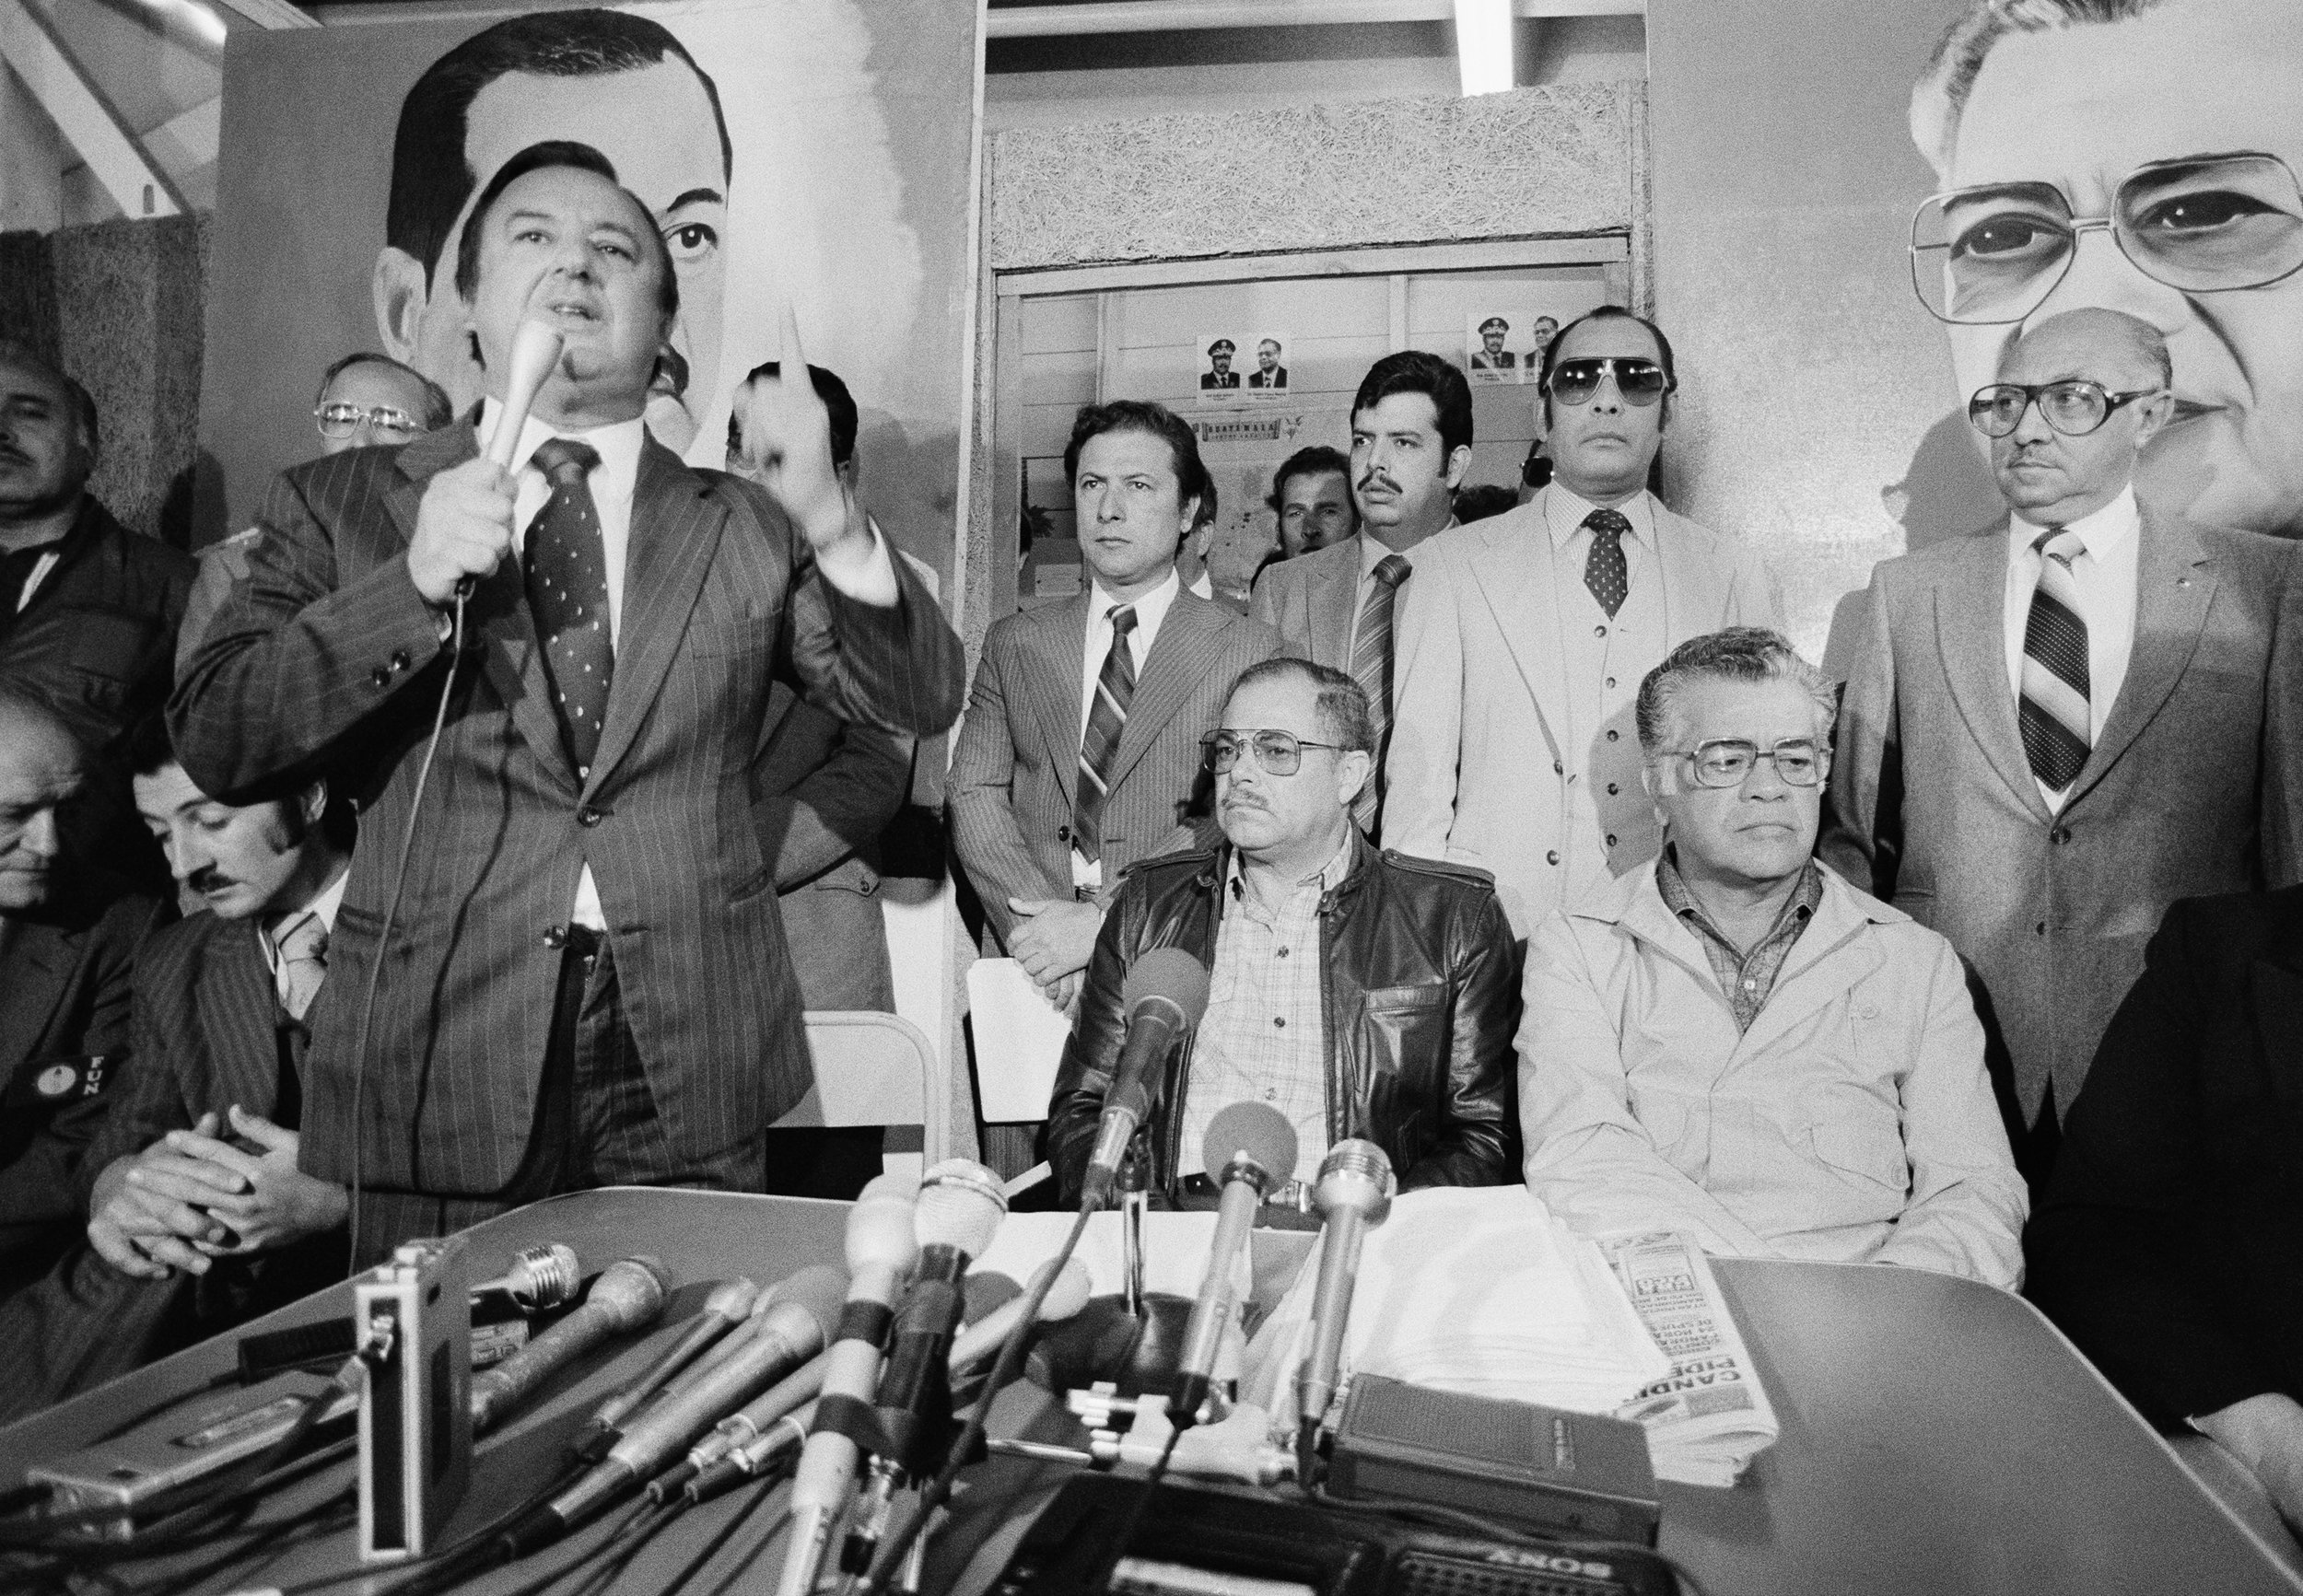 The winner of the 1982 presidential elections, General Ángel Aníbal Guevara, center, seated, looks on with political party leaders at a press conference March 25, 1982 following a military coup d'etat March 23, 1982 in Guatemala City, Guatemala. General Guevara was the designated successor to the previous military president General Romeo Lucas Garcia in the March 7 elections followed by a military coup d'état by General Efraín Ríos Montt.